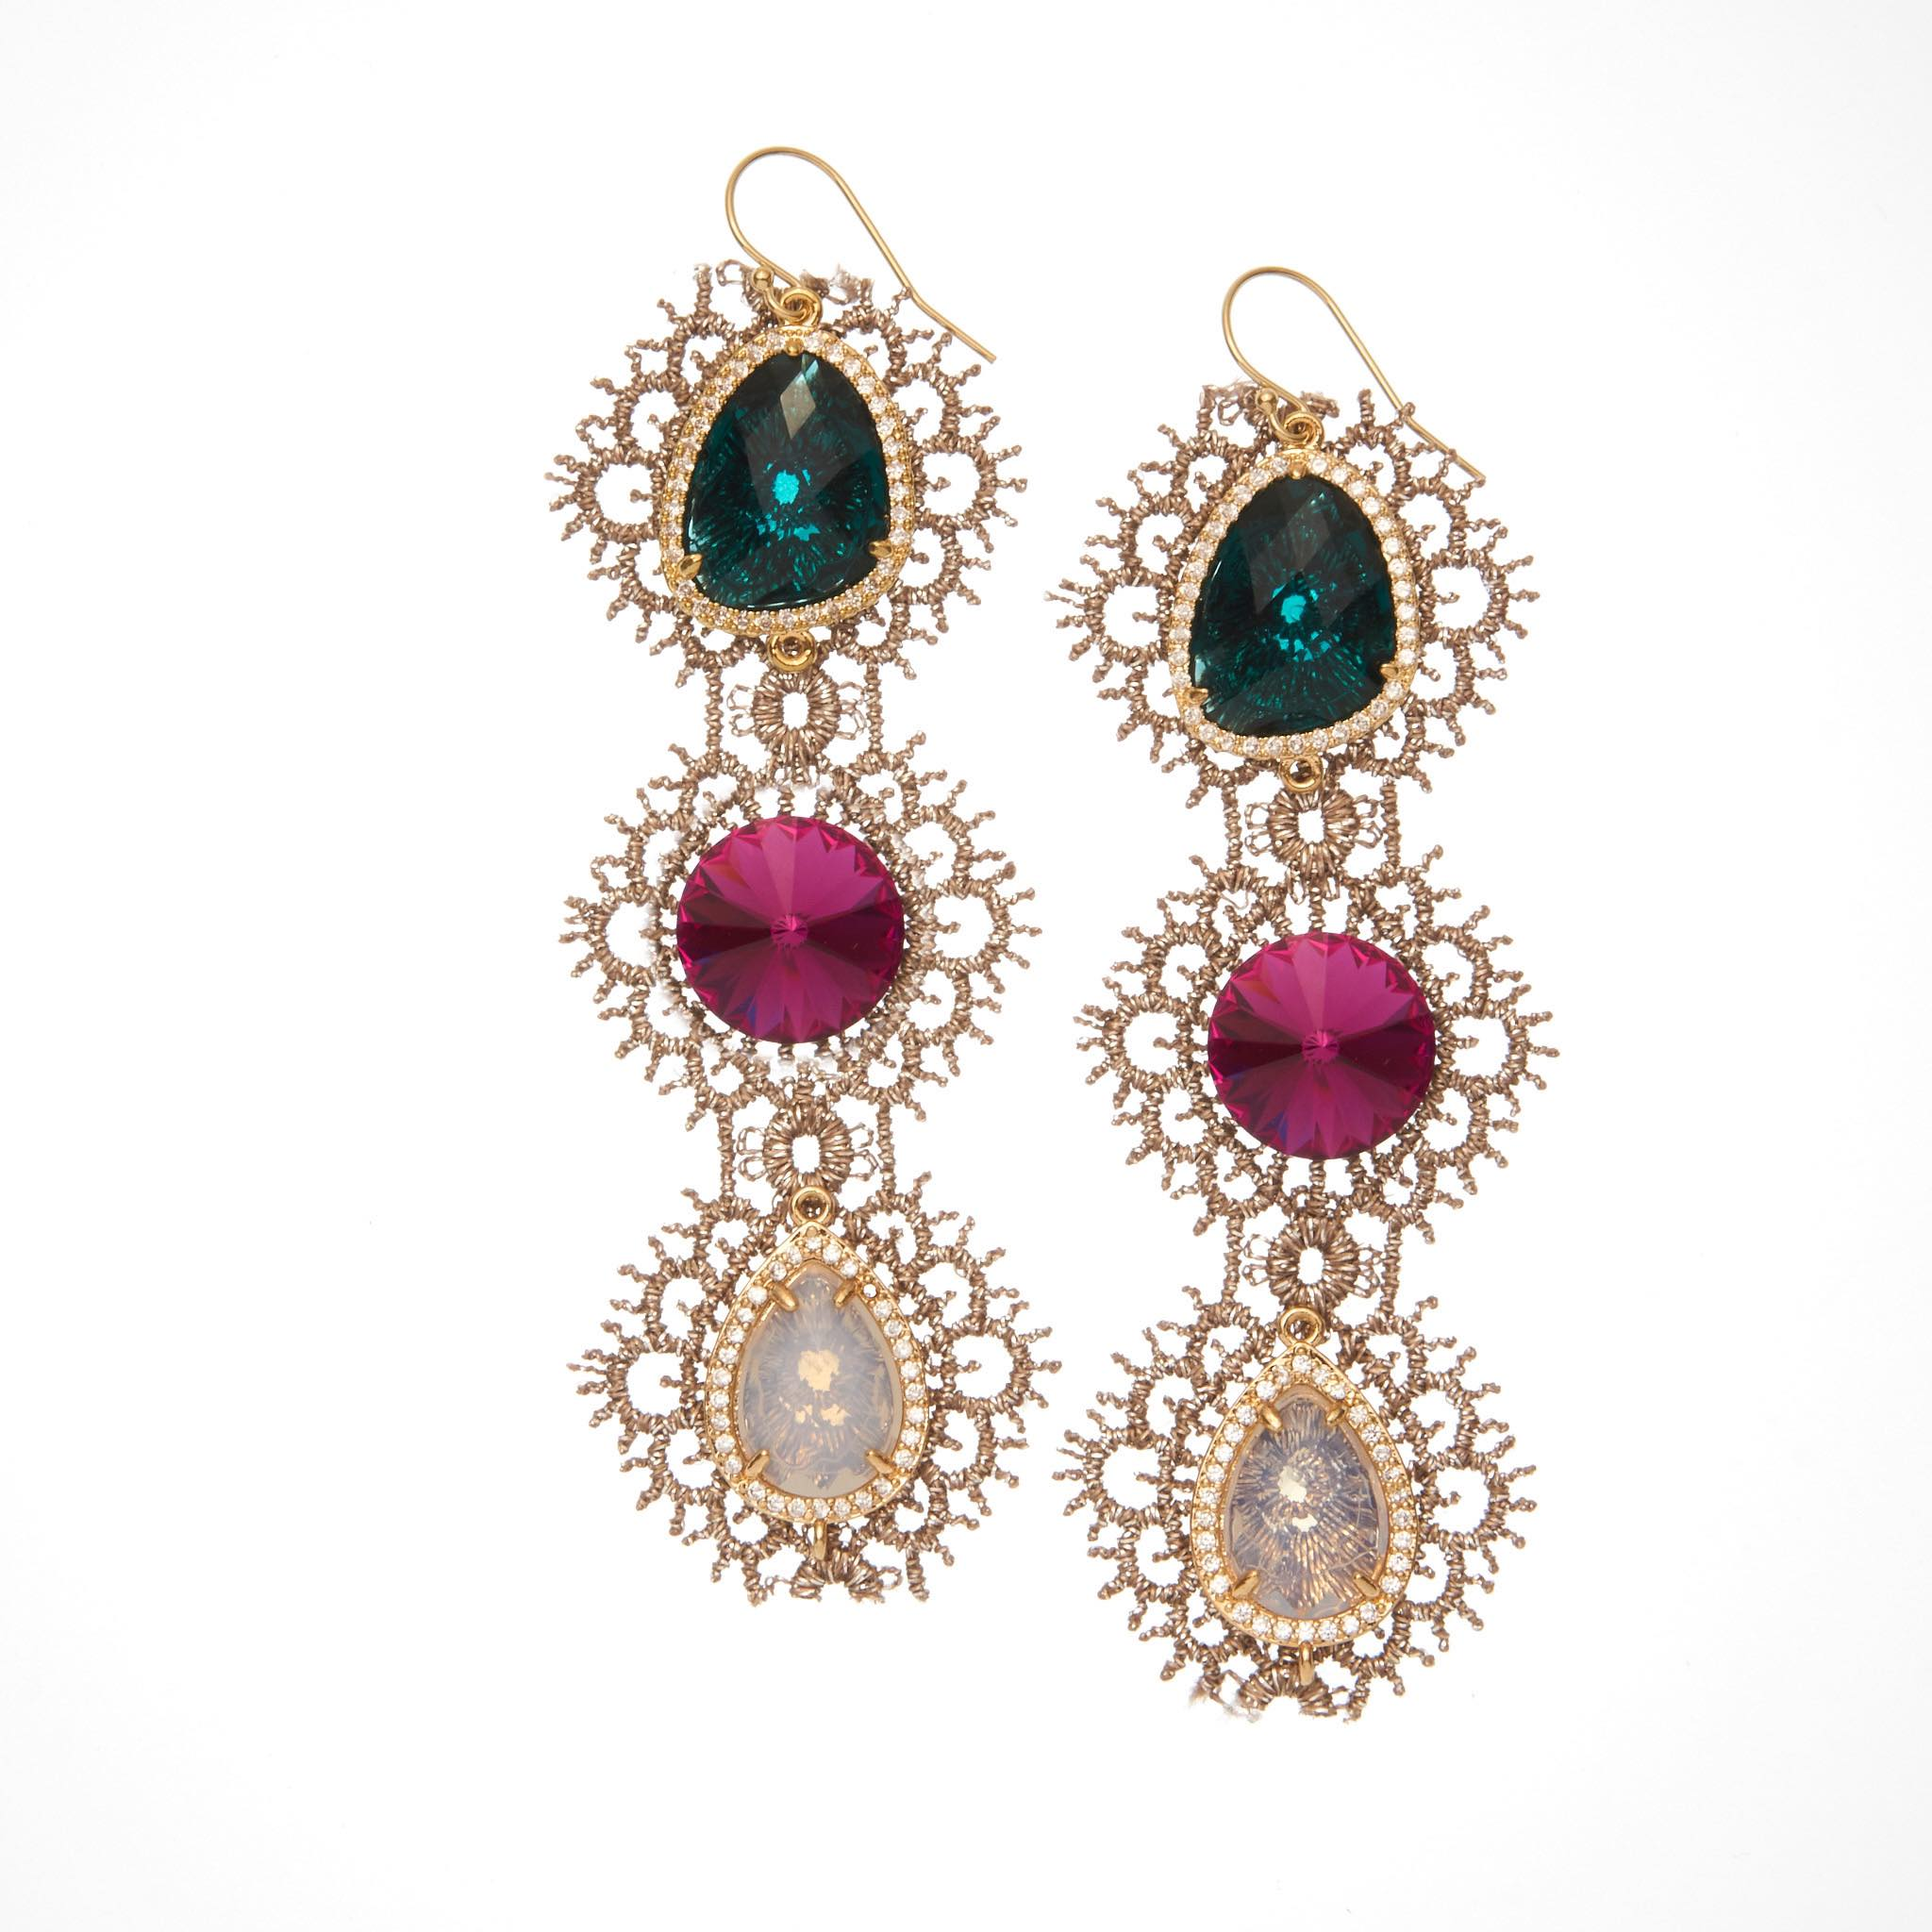 Rosetti Earrings